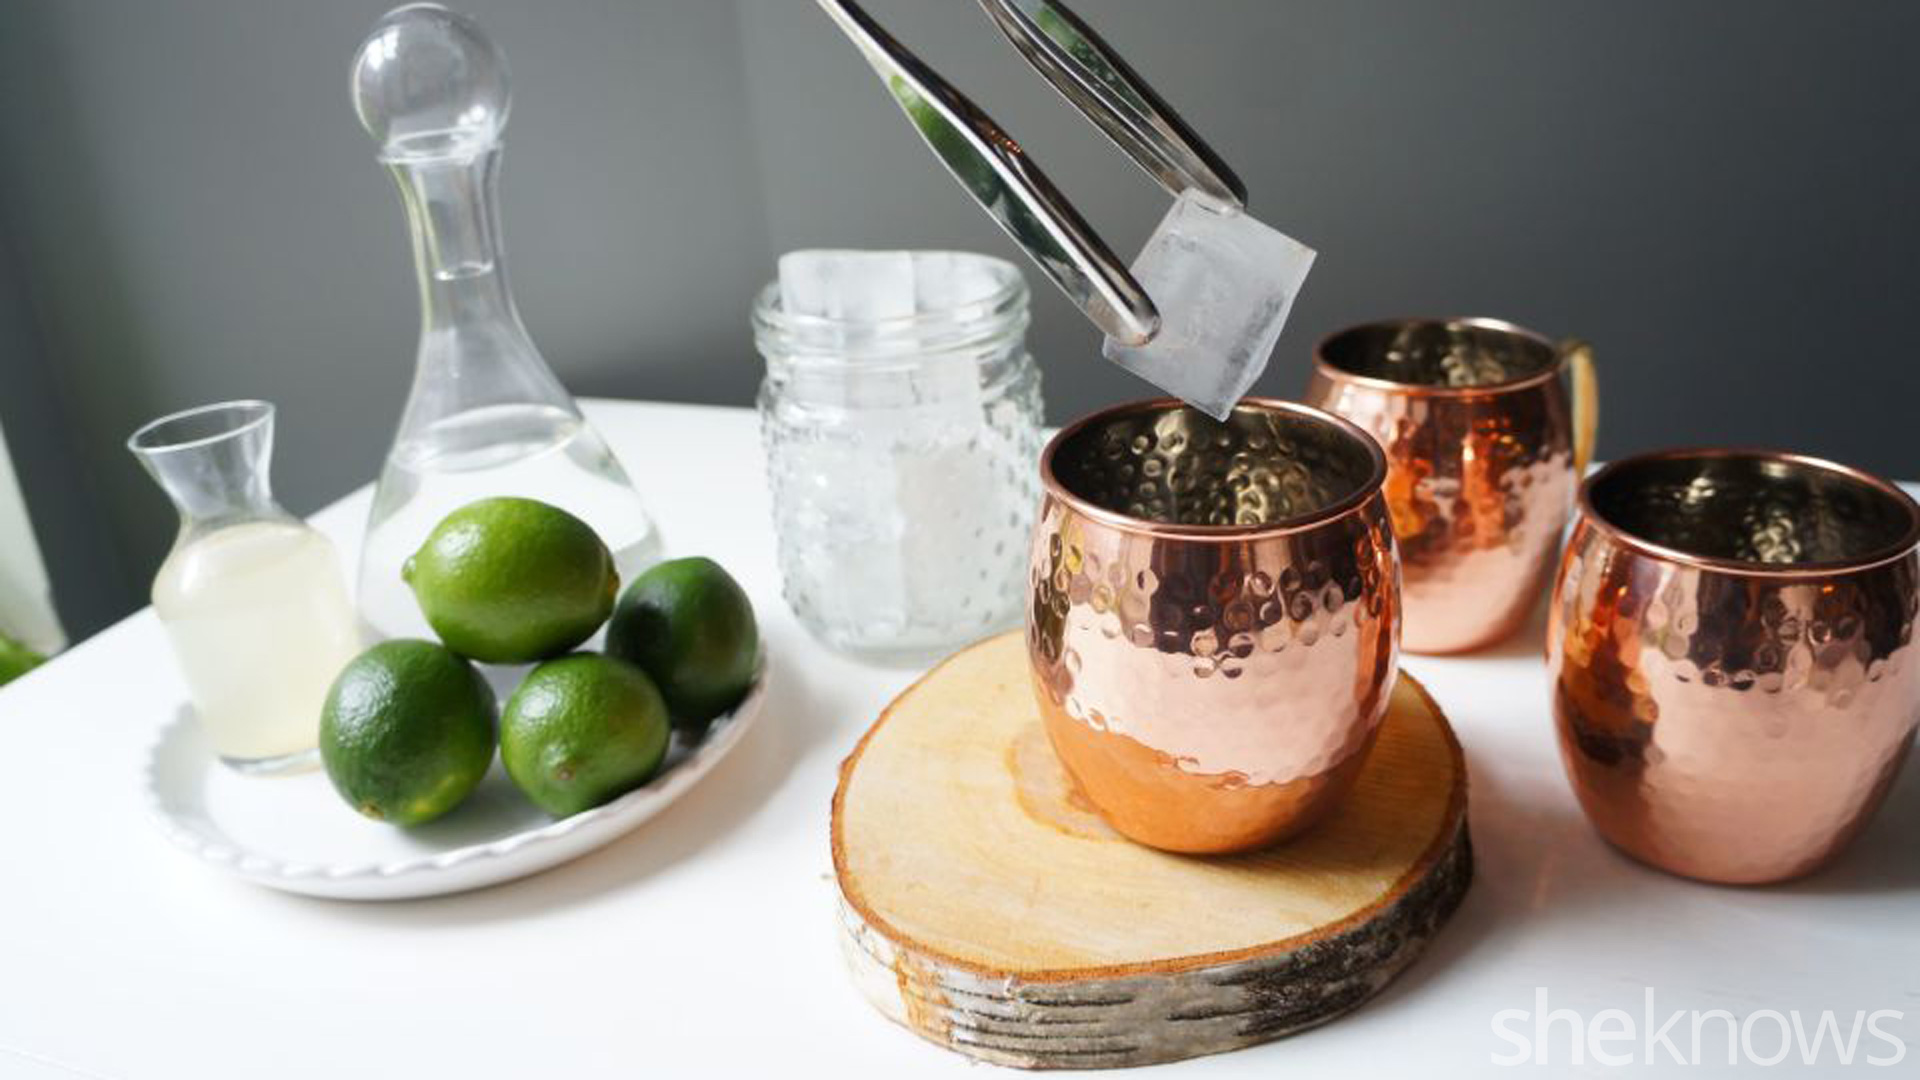 Moscow mule recipes to add to your must-try cocktail list this ...